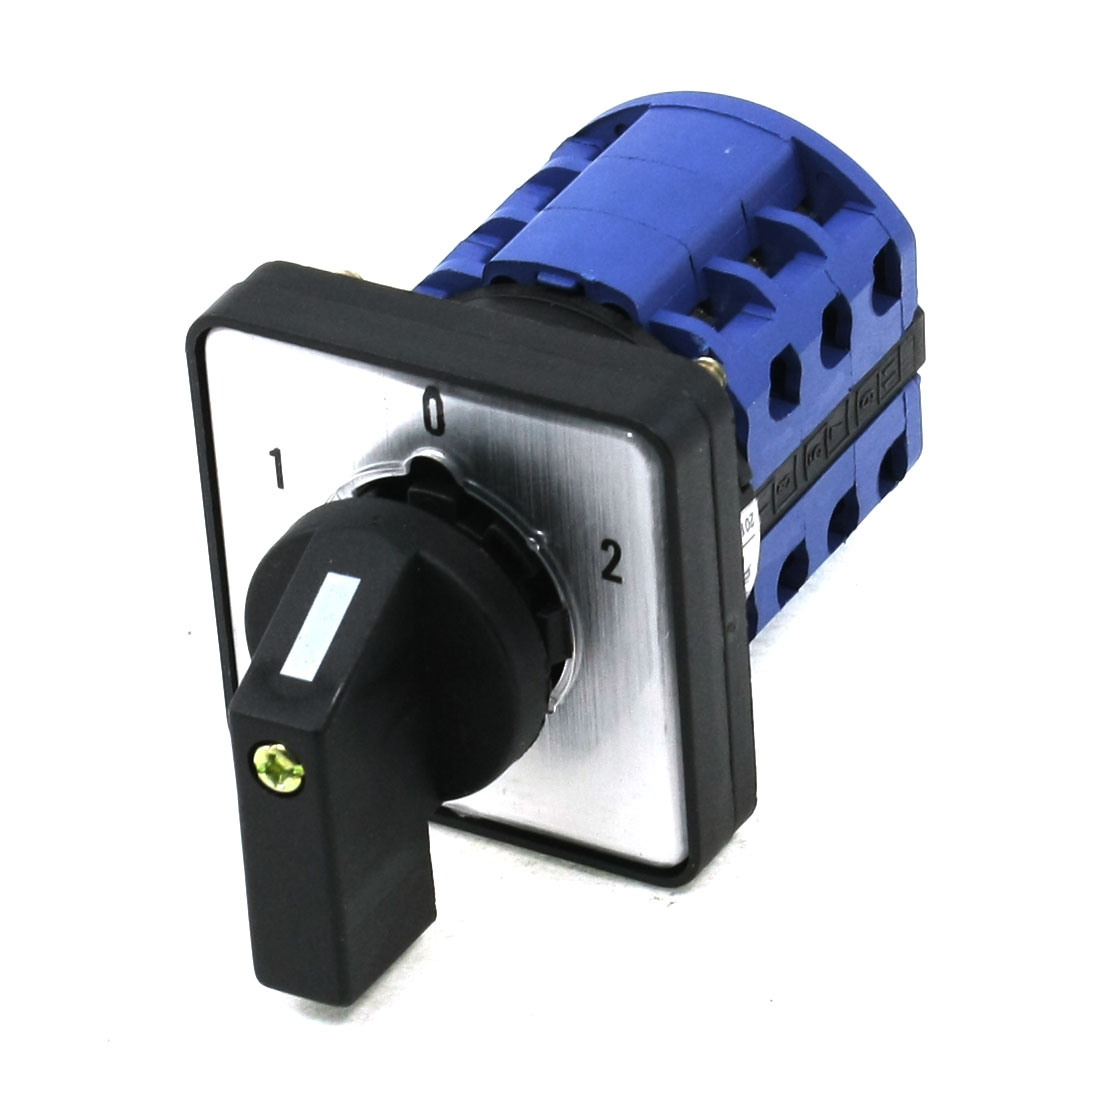 1.8A/380V 0.2A/220V 16A/380V ON/OFF/ON Rotary Cam 3 Position Combination Switch